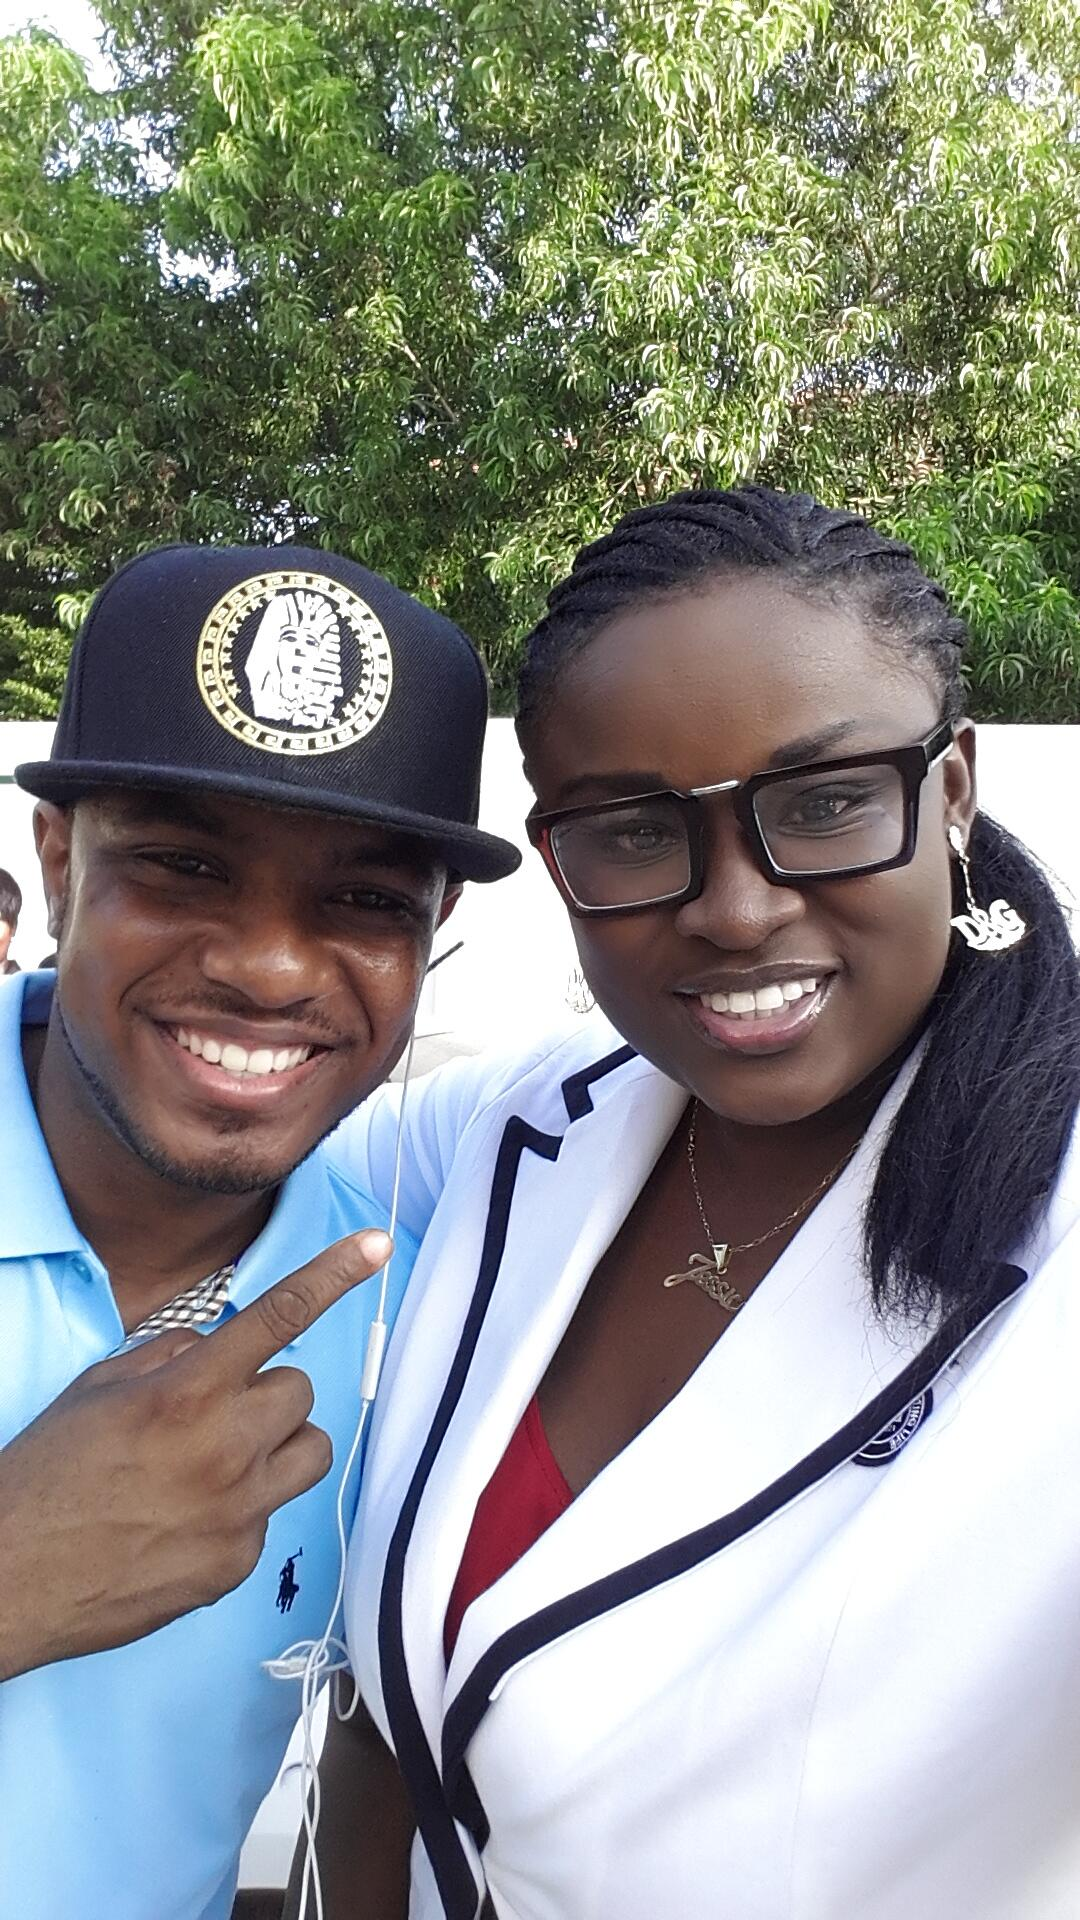 @drcryme was good to see u... We need to link up soon. http://t.co/3otJWccjc3